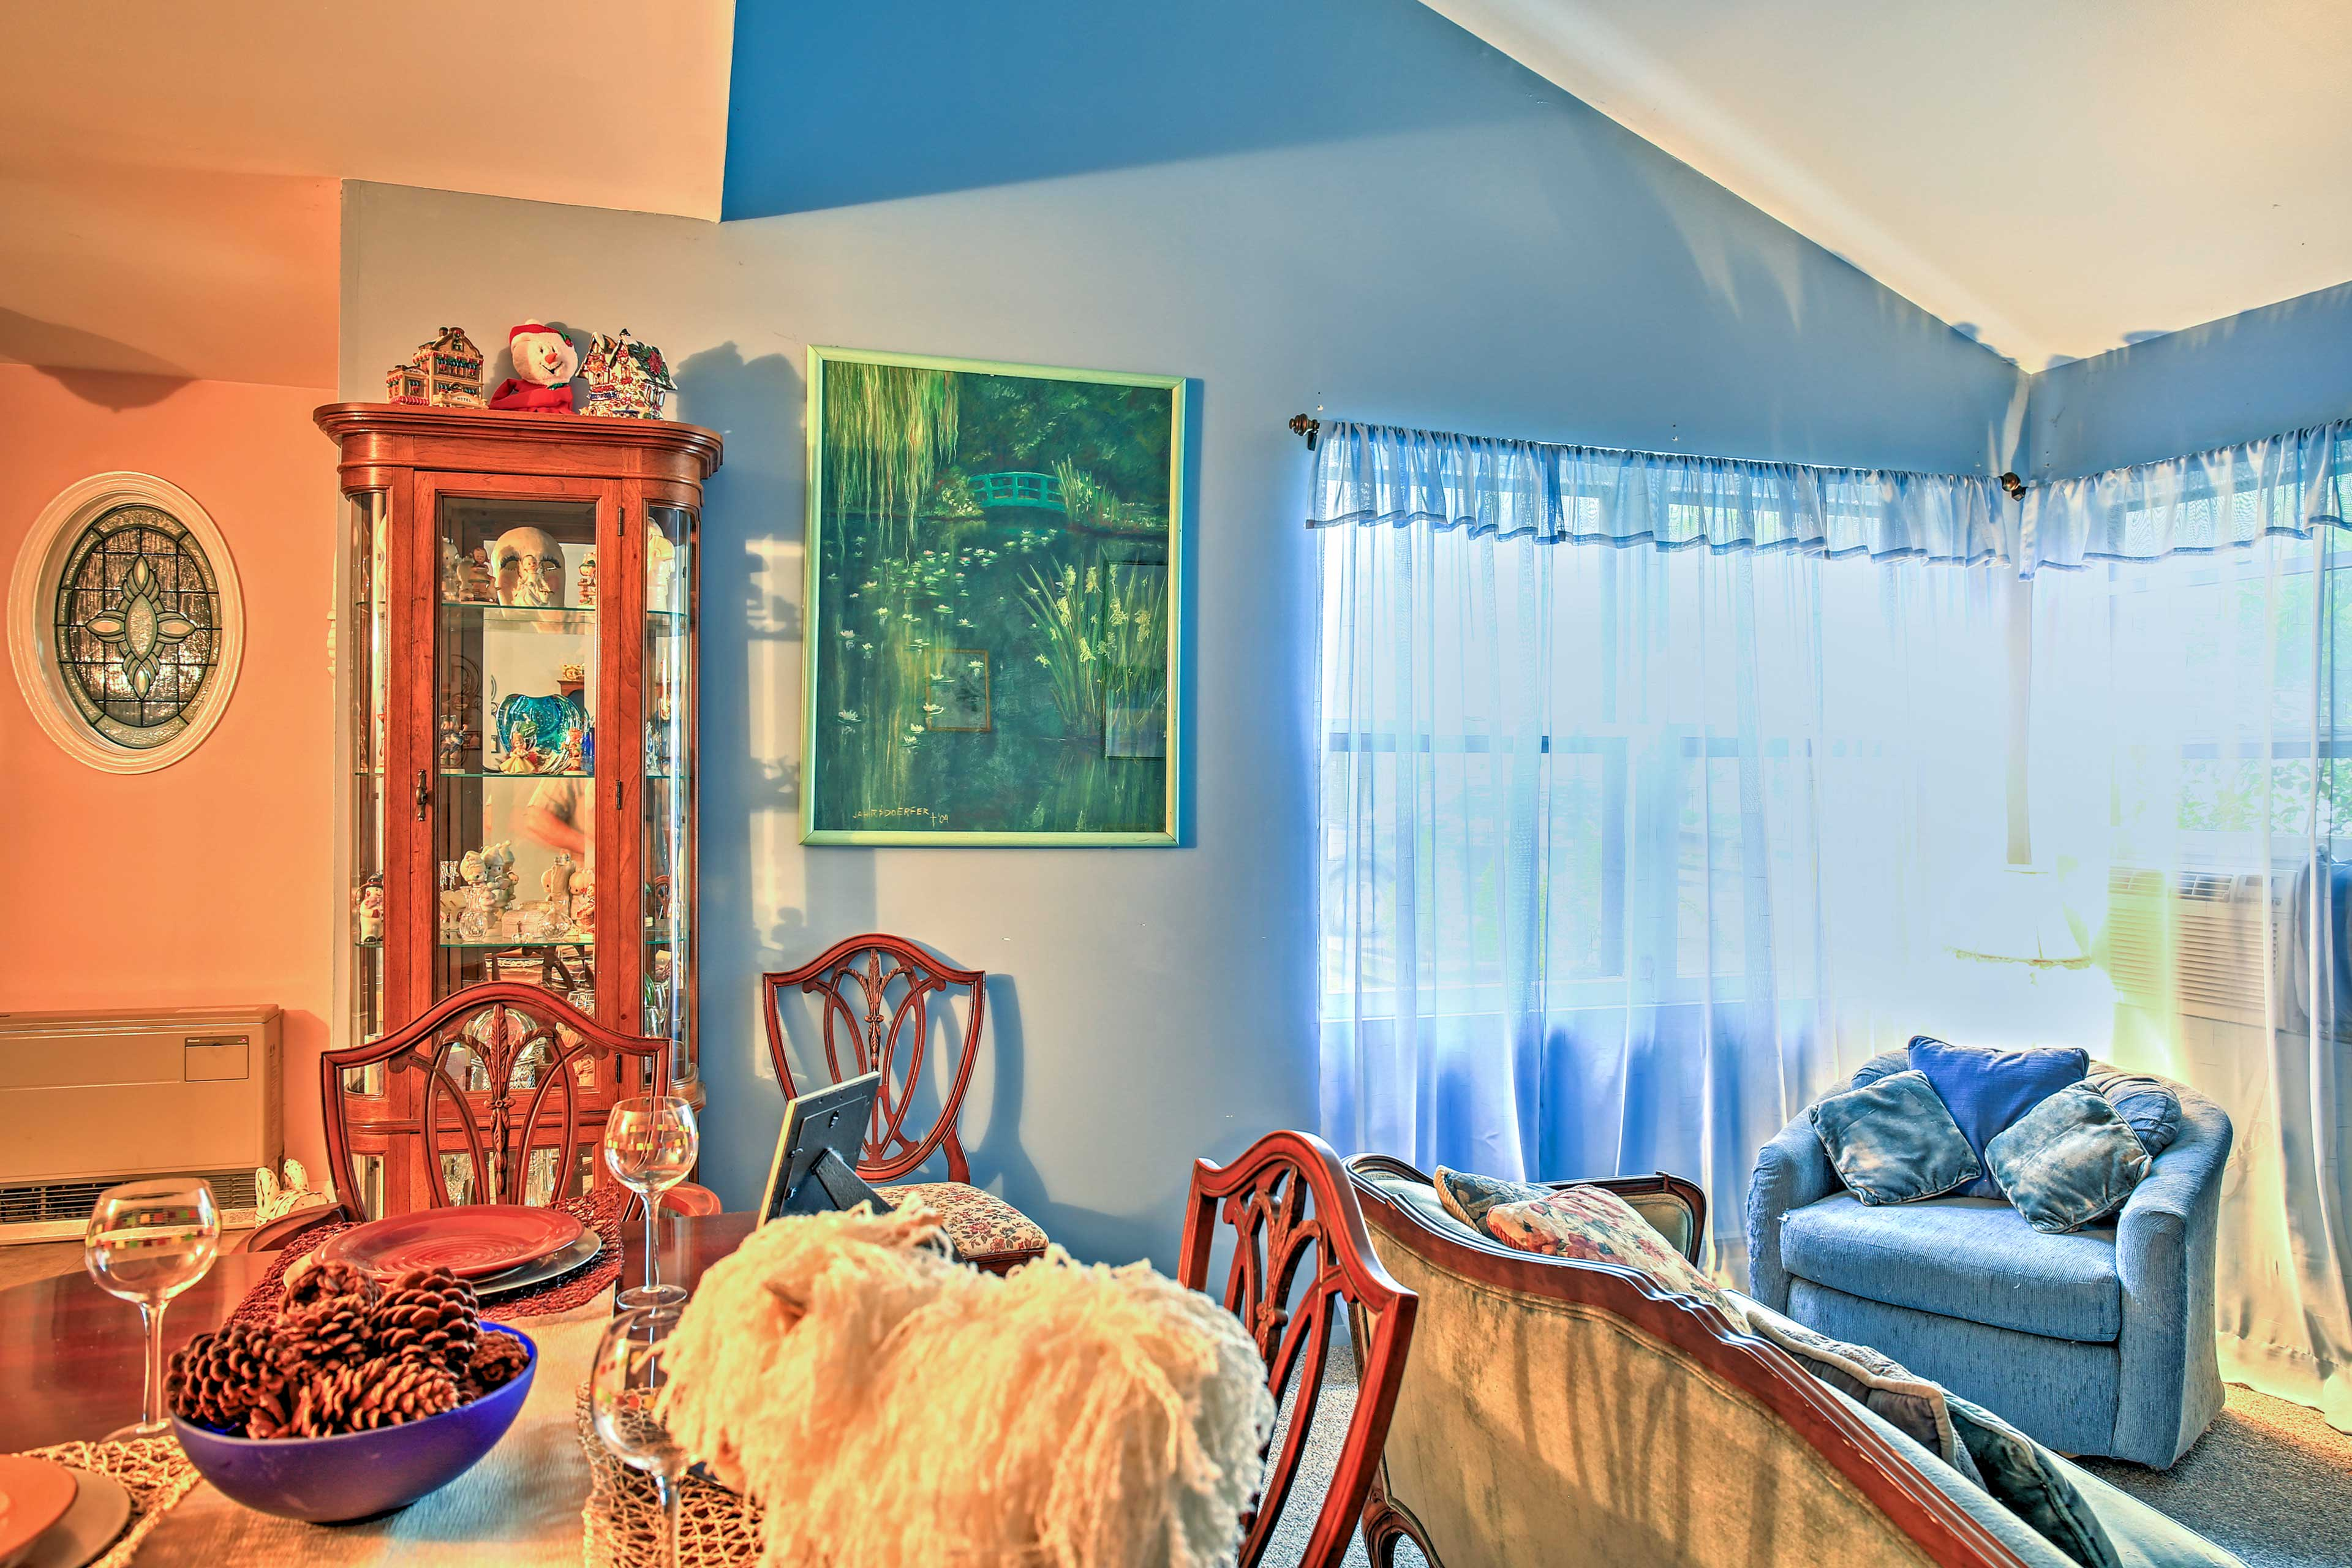 Through the front door you'll feel right at home, welcomed by friendly decor and delightful collectibles.